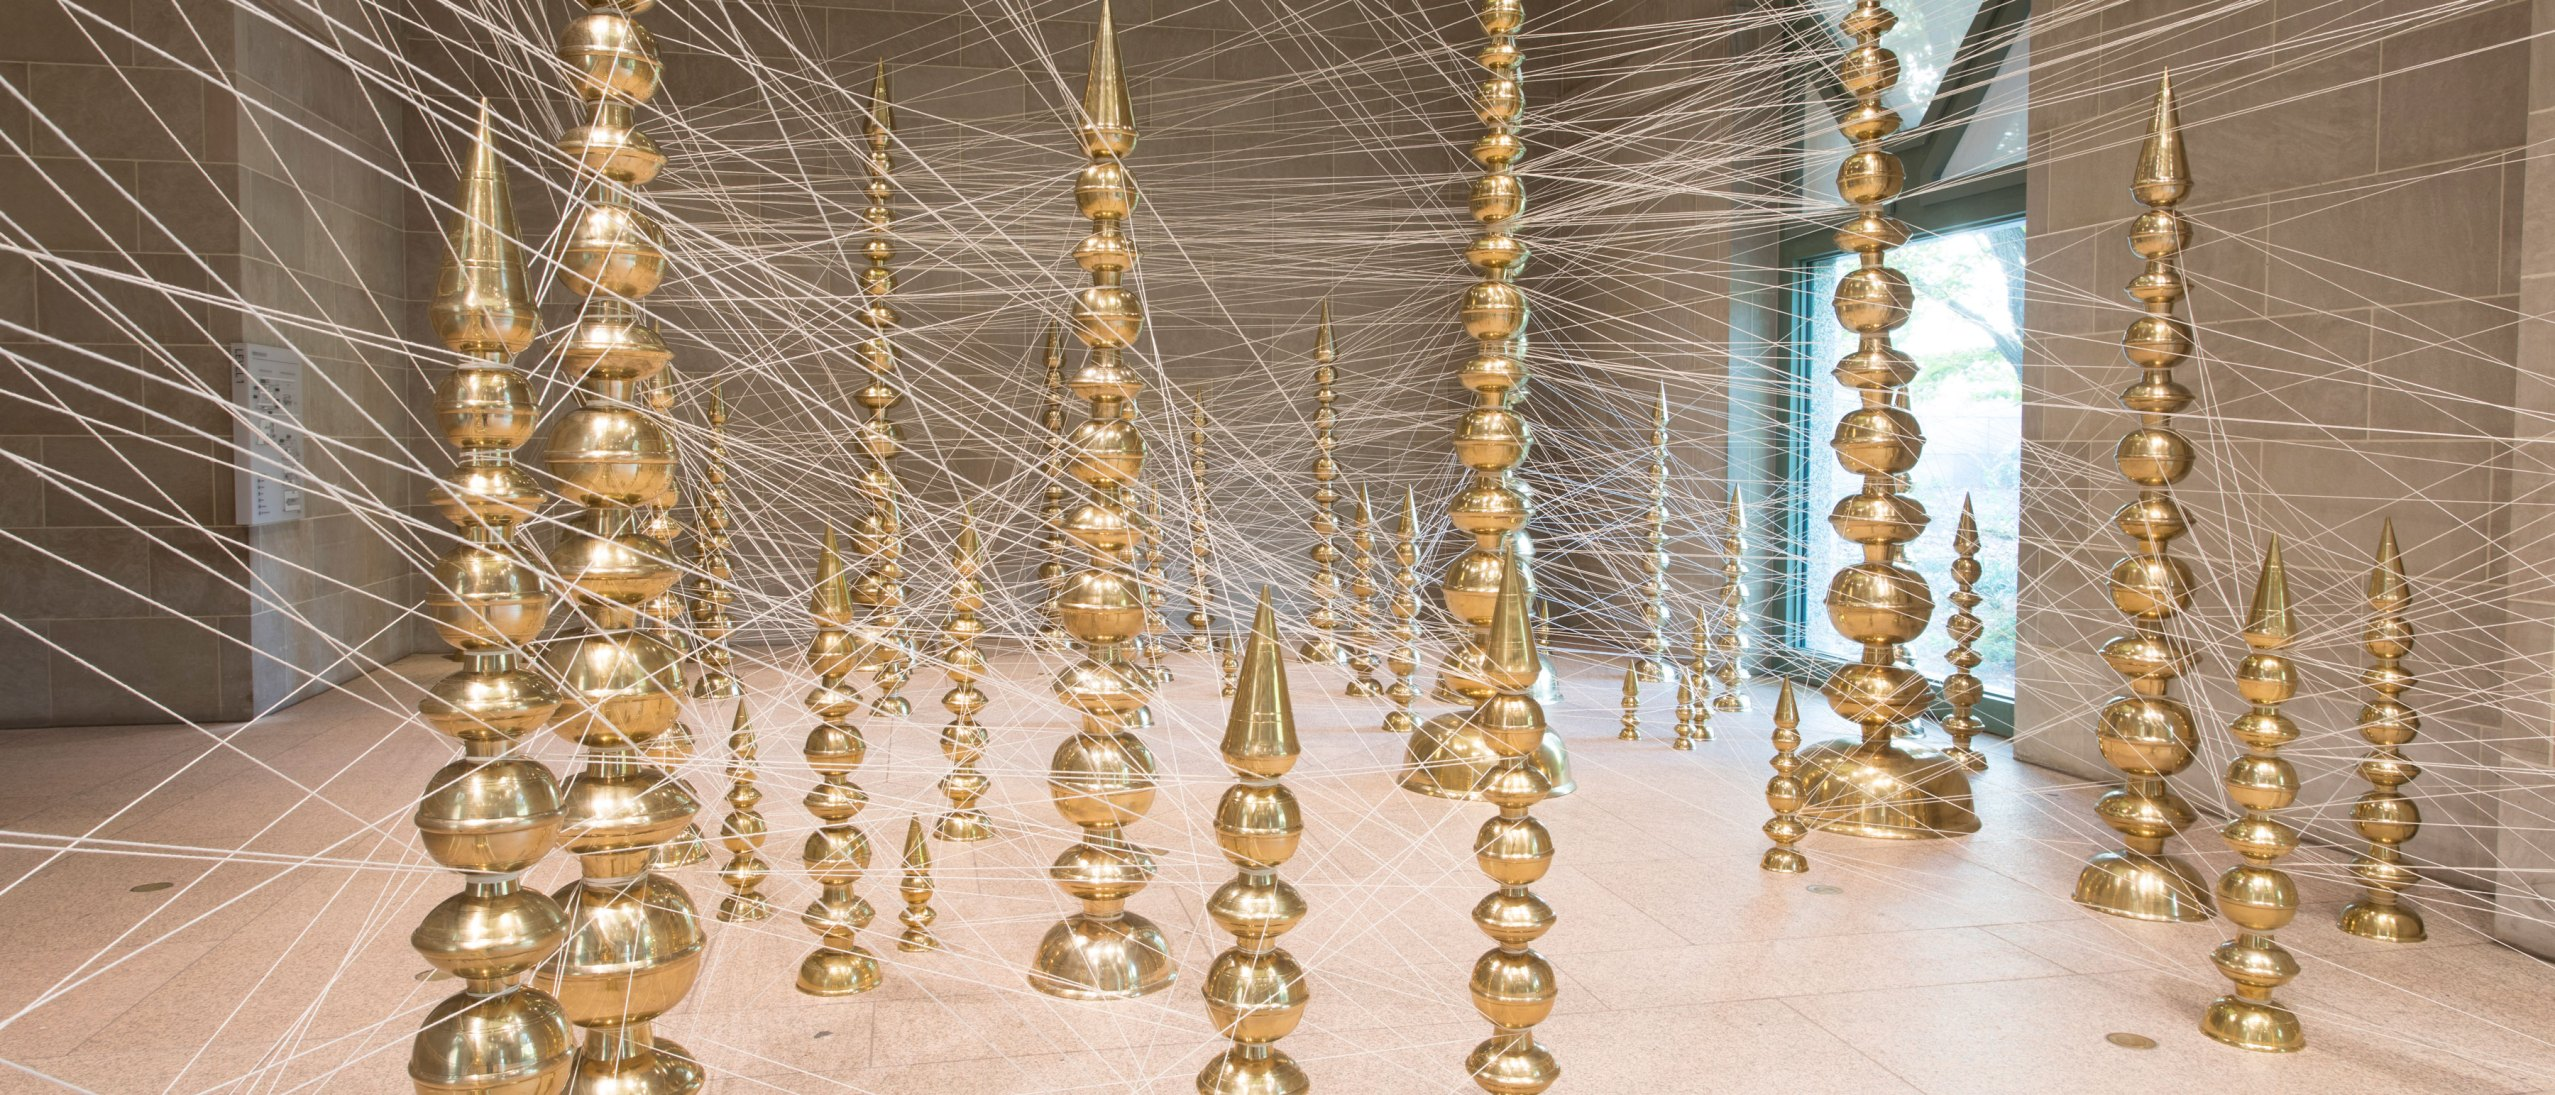 in gallery view of Subodh Gupta's terminal installed in the Sackler pavillion